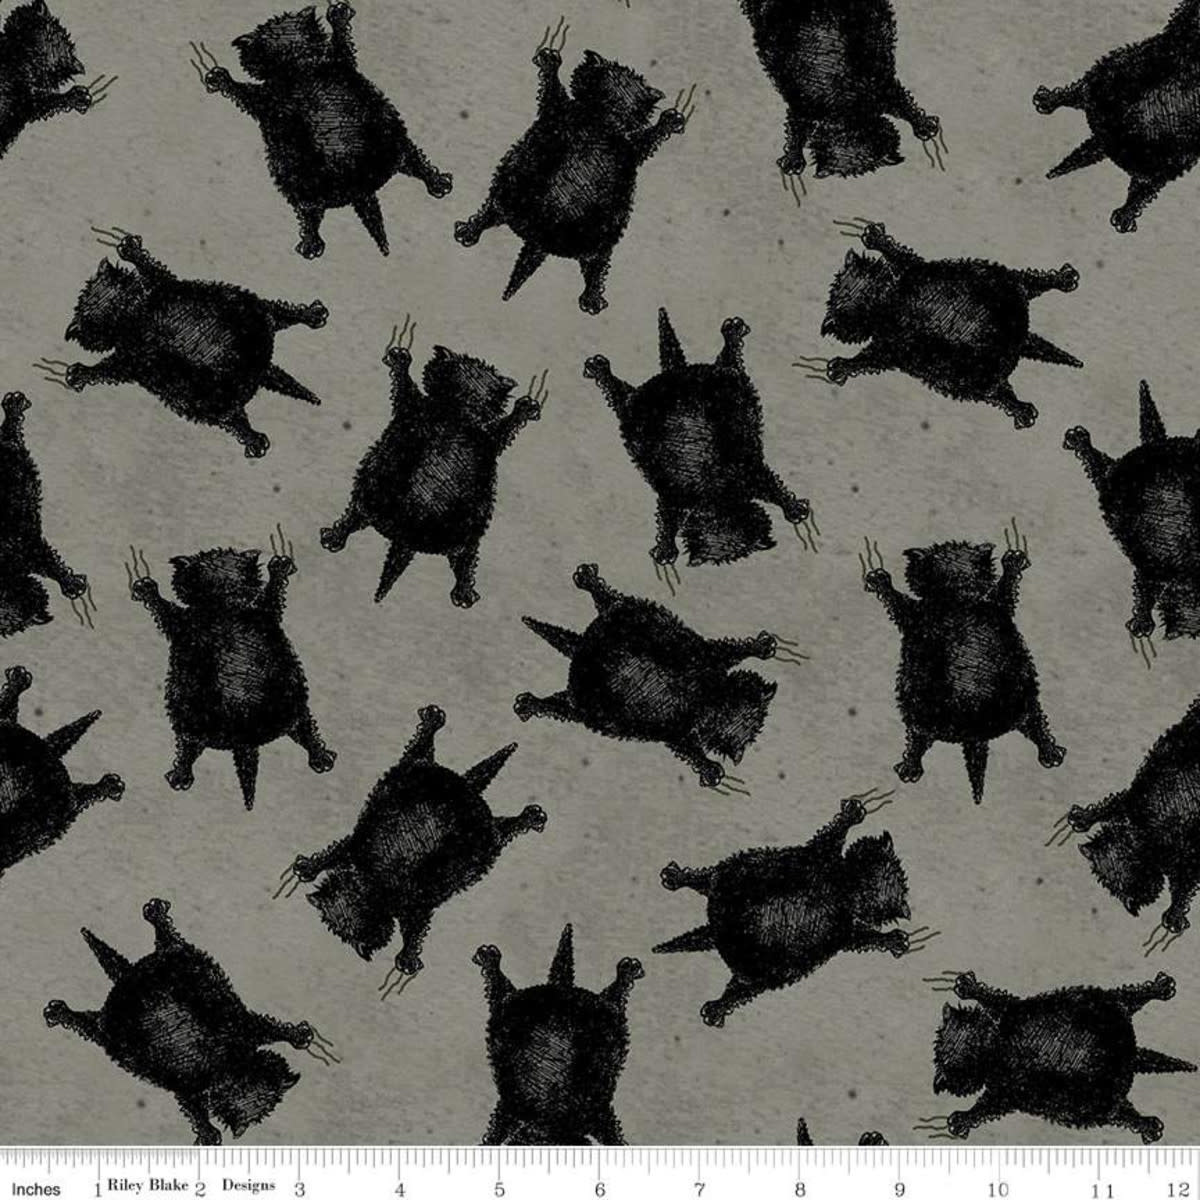 RILEY BLAKE DESIGNS Goose Tales, Scaredy Cats Toss Gray, per cm or $20/m